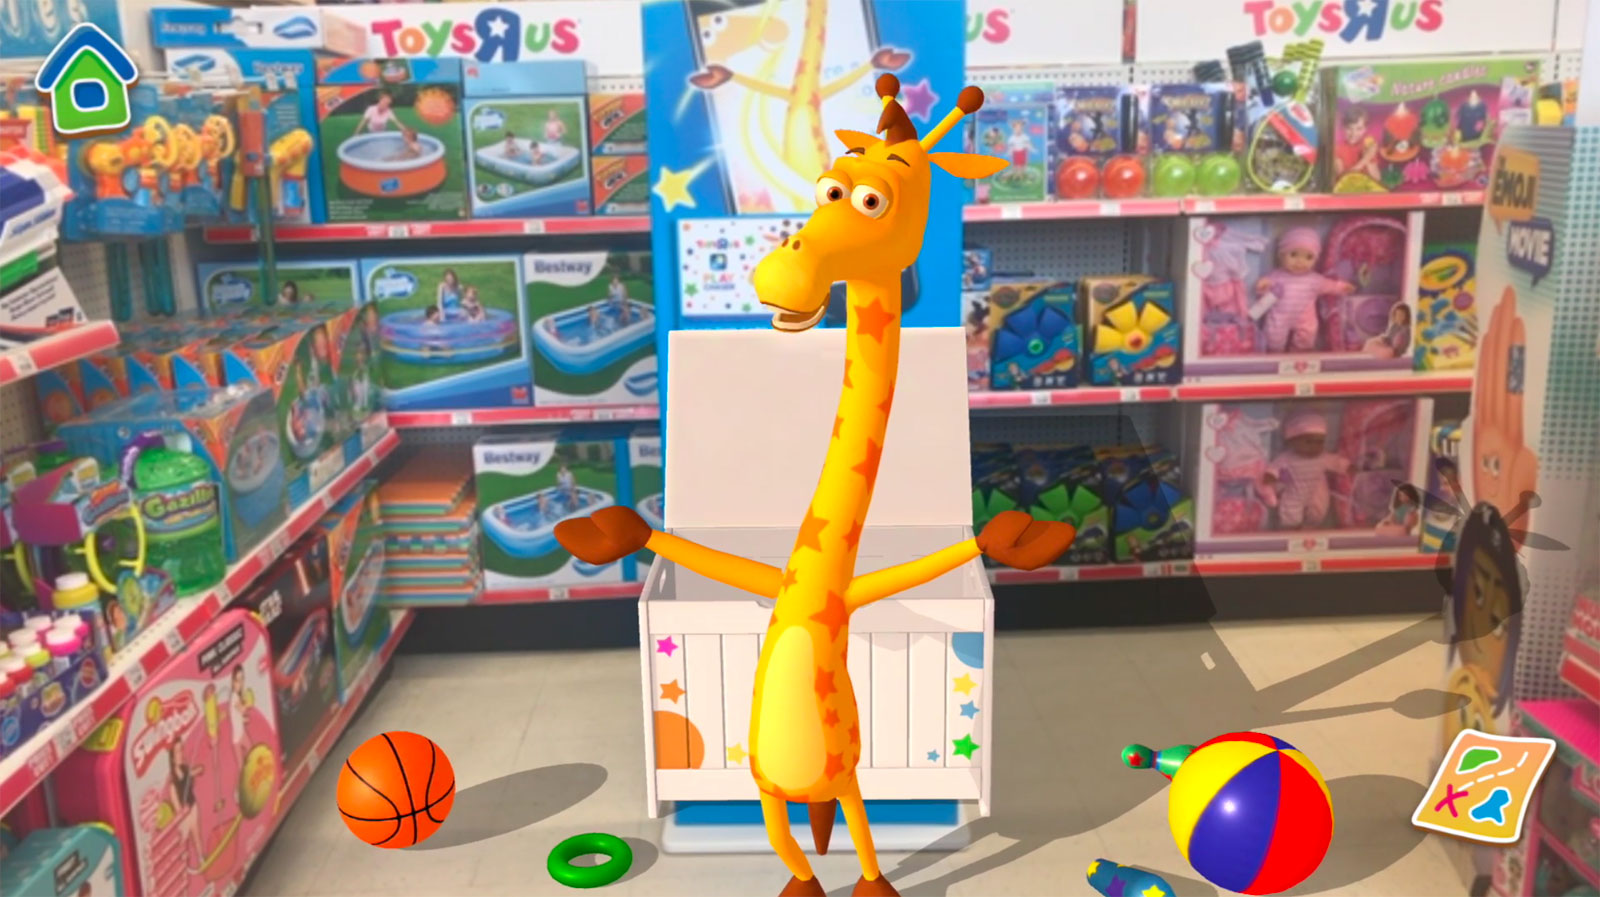 Toys R Us Boys Toys 7 10 : Toys r us hopes ar will bring you back to its stores